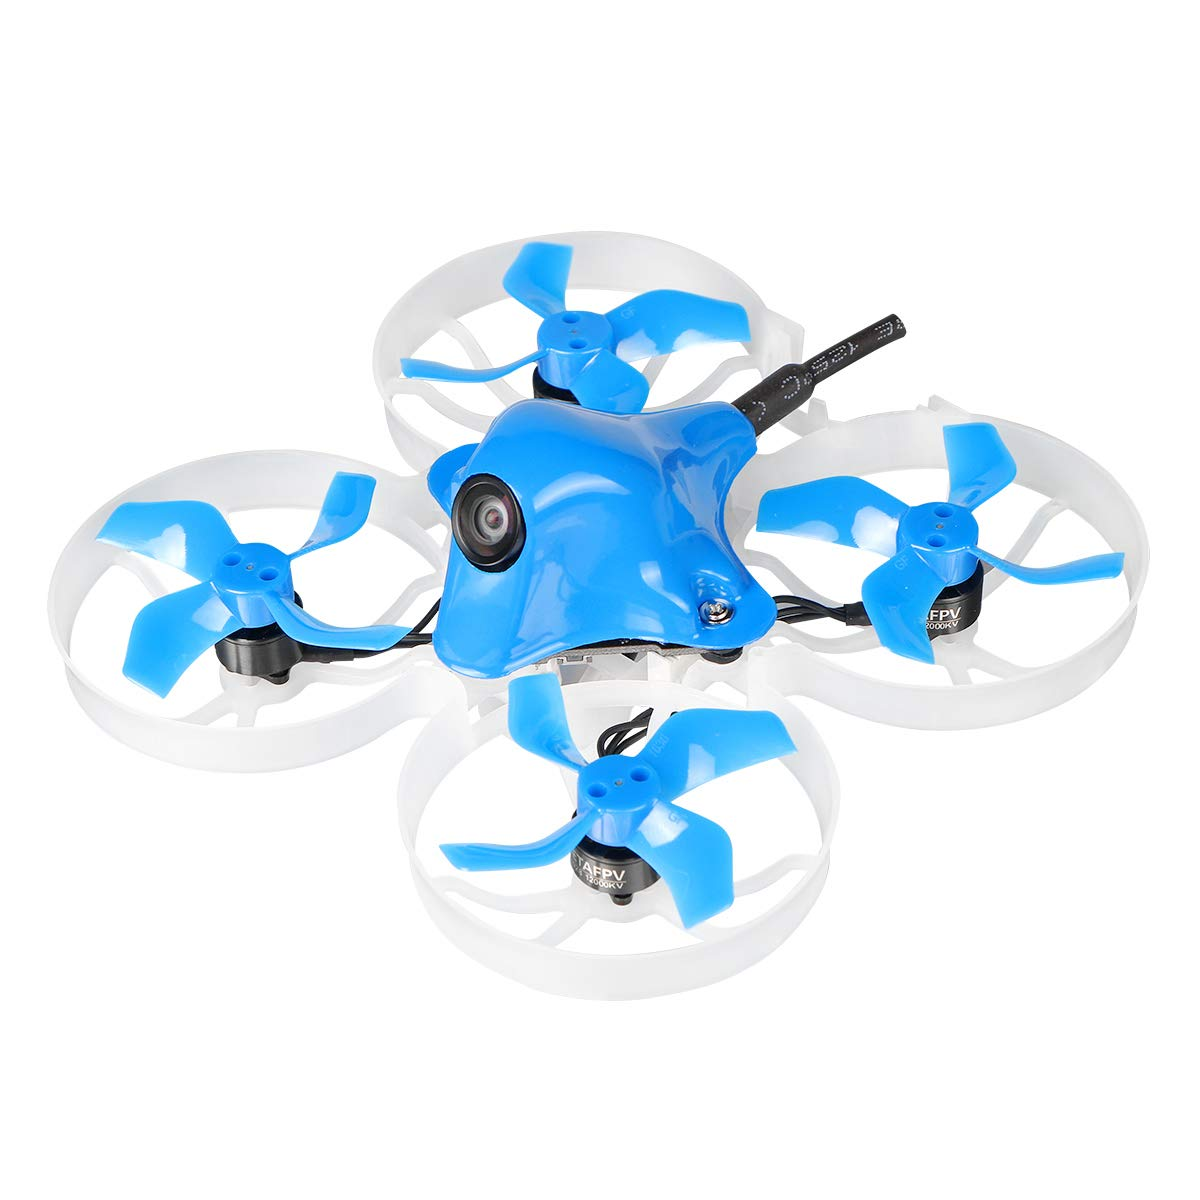 BETAFPV Beta75 Pro 2 Brushless Whoop Drone with 2S F4 AIO FC Frsky Recevier 5A ESC 25mW Z02 Camera 35 Degree OSD Smart Audio 08028 12000KV Motor PH2.0 Cable for Tiny Whoop FPV Racing